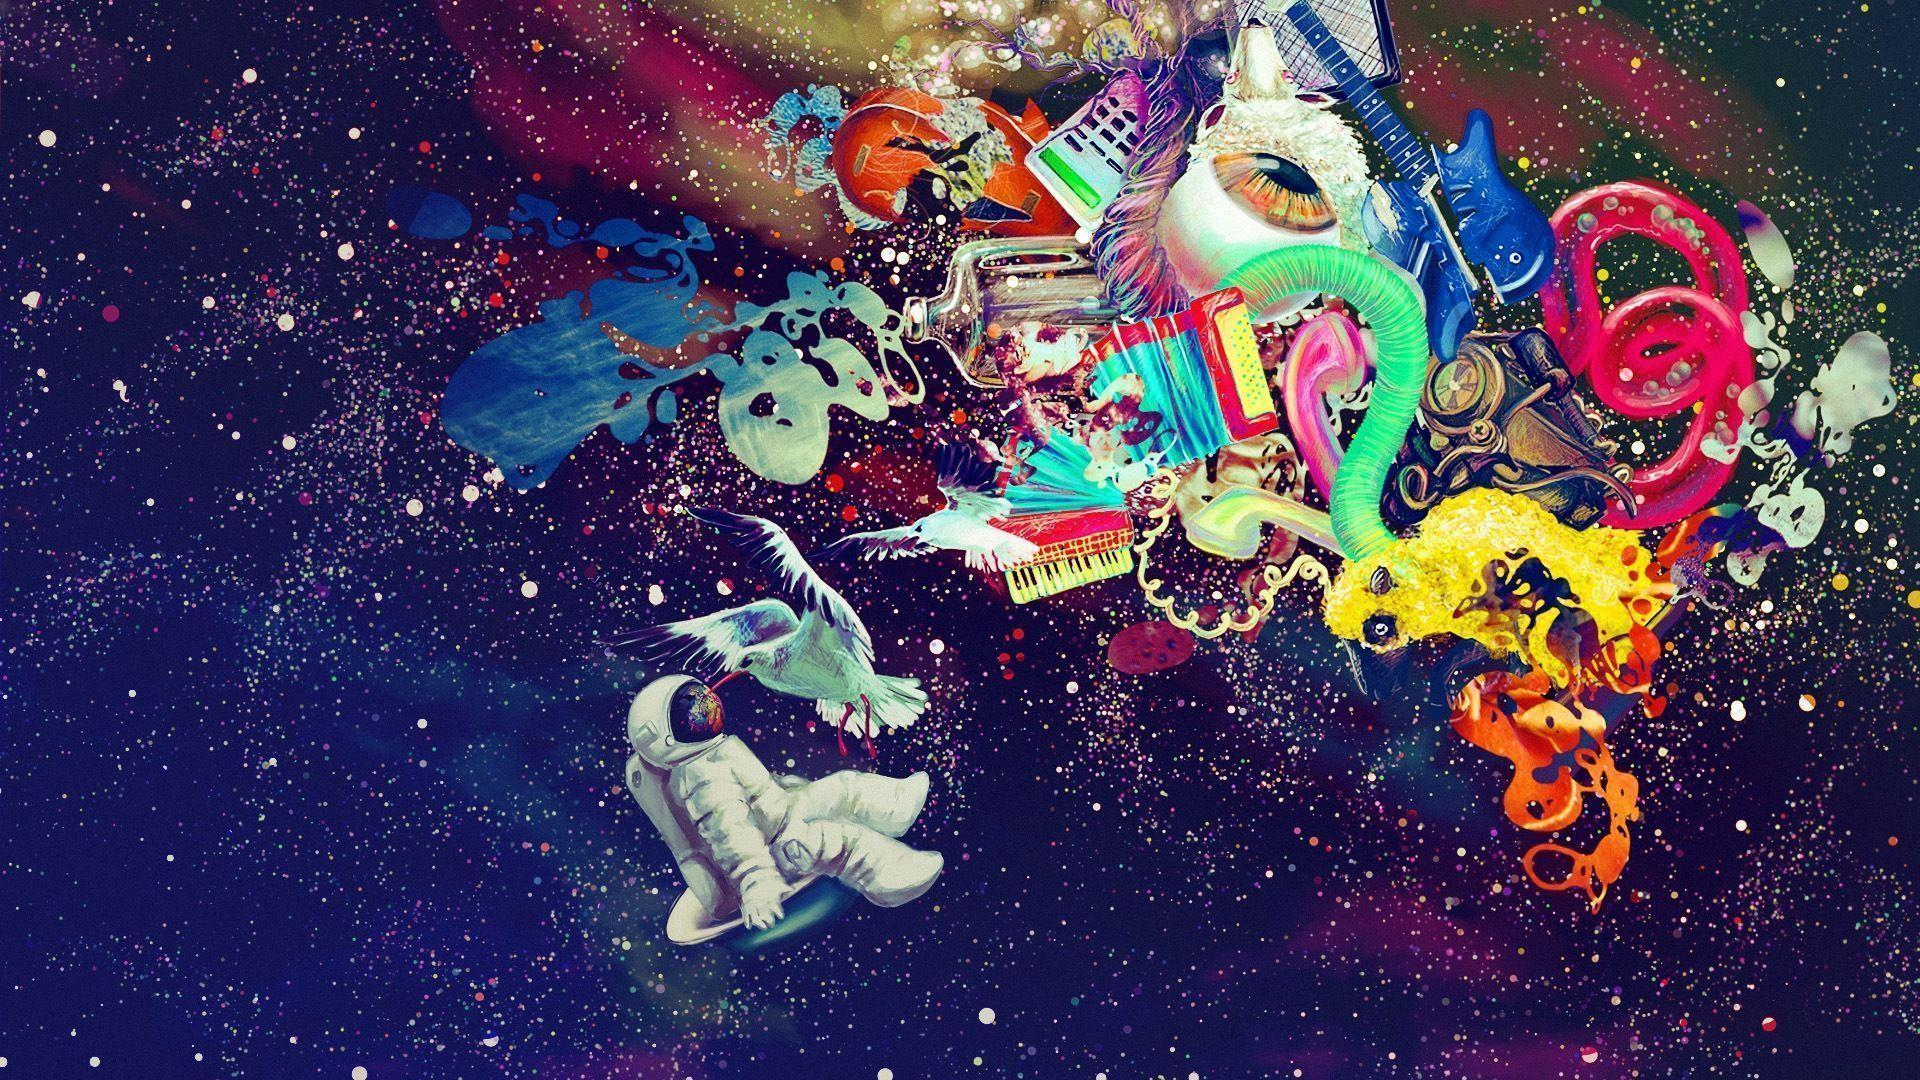 Tumblr iphone wallpaper trippy - Wallpapers For Trippy Space Backgrounds Tumblr